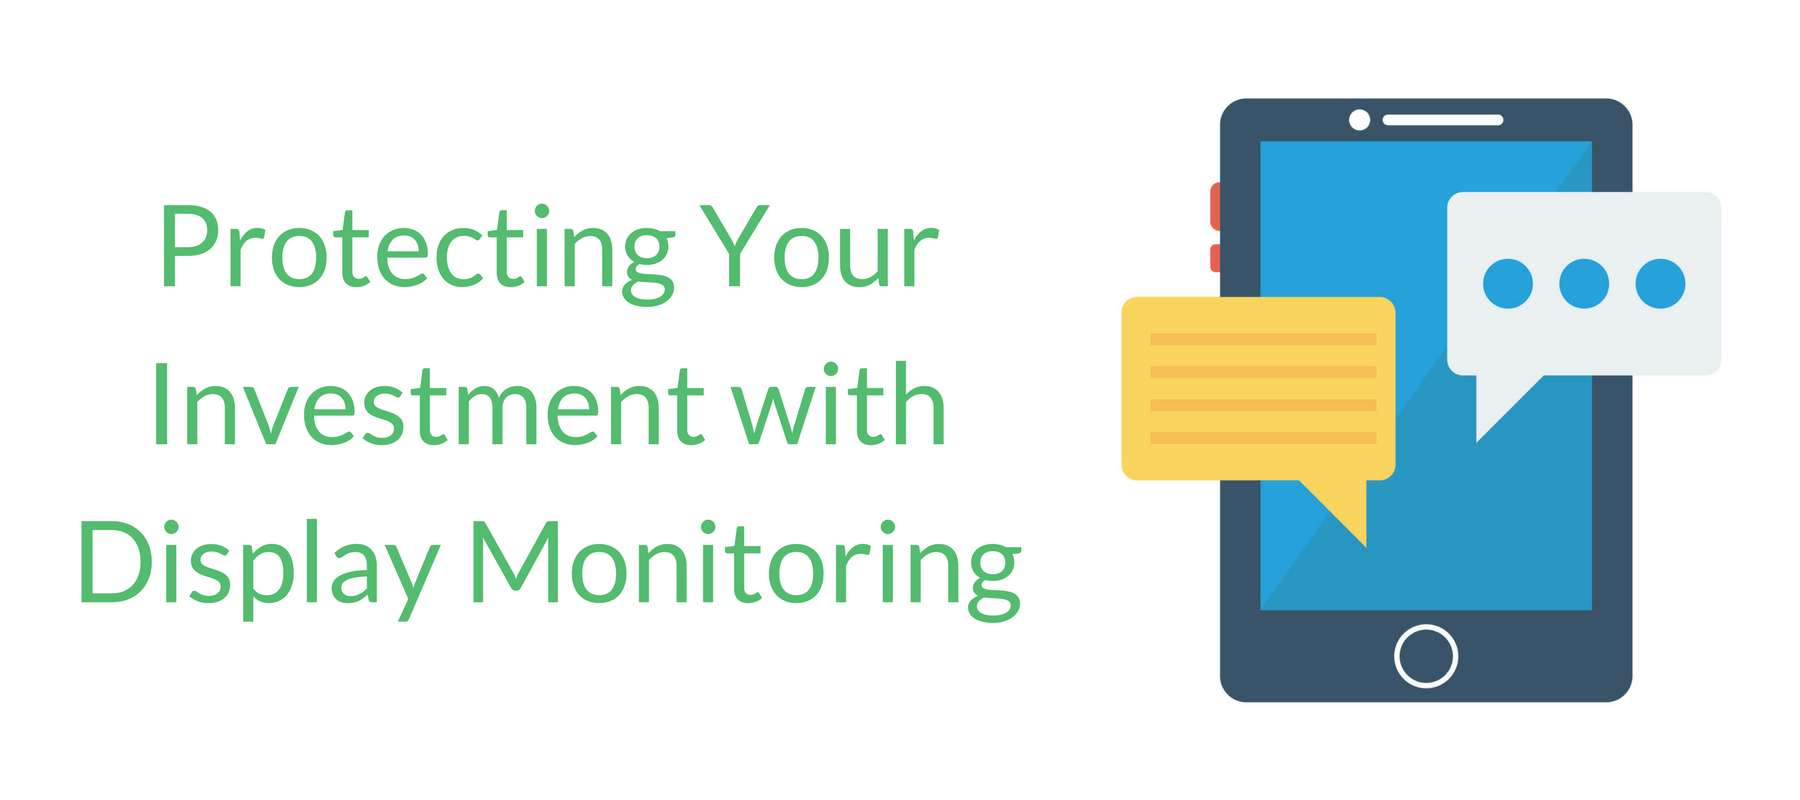 Protecting Your Investment with Display Monitoring